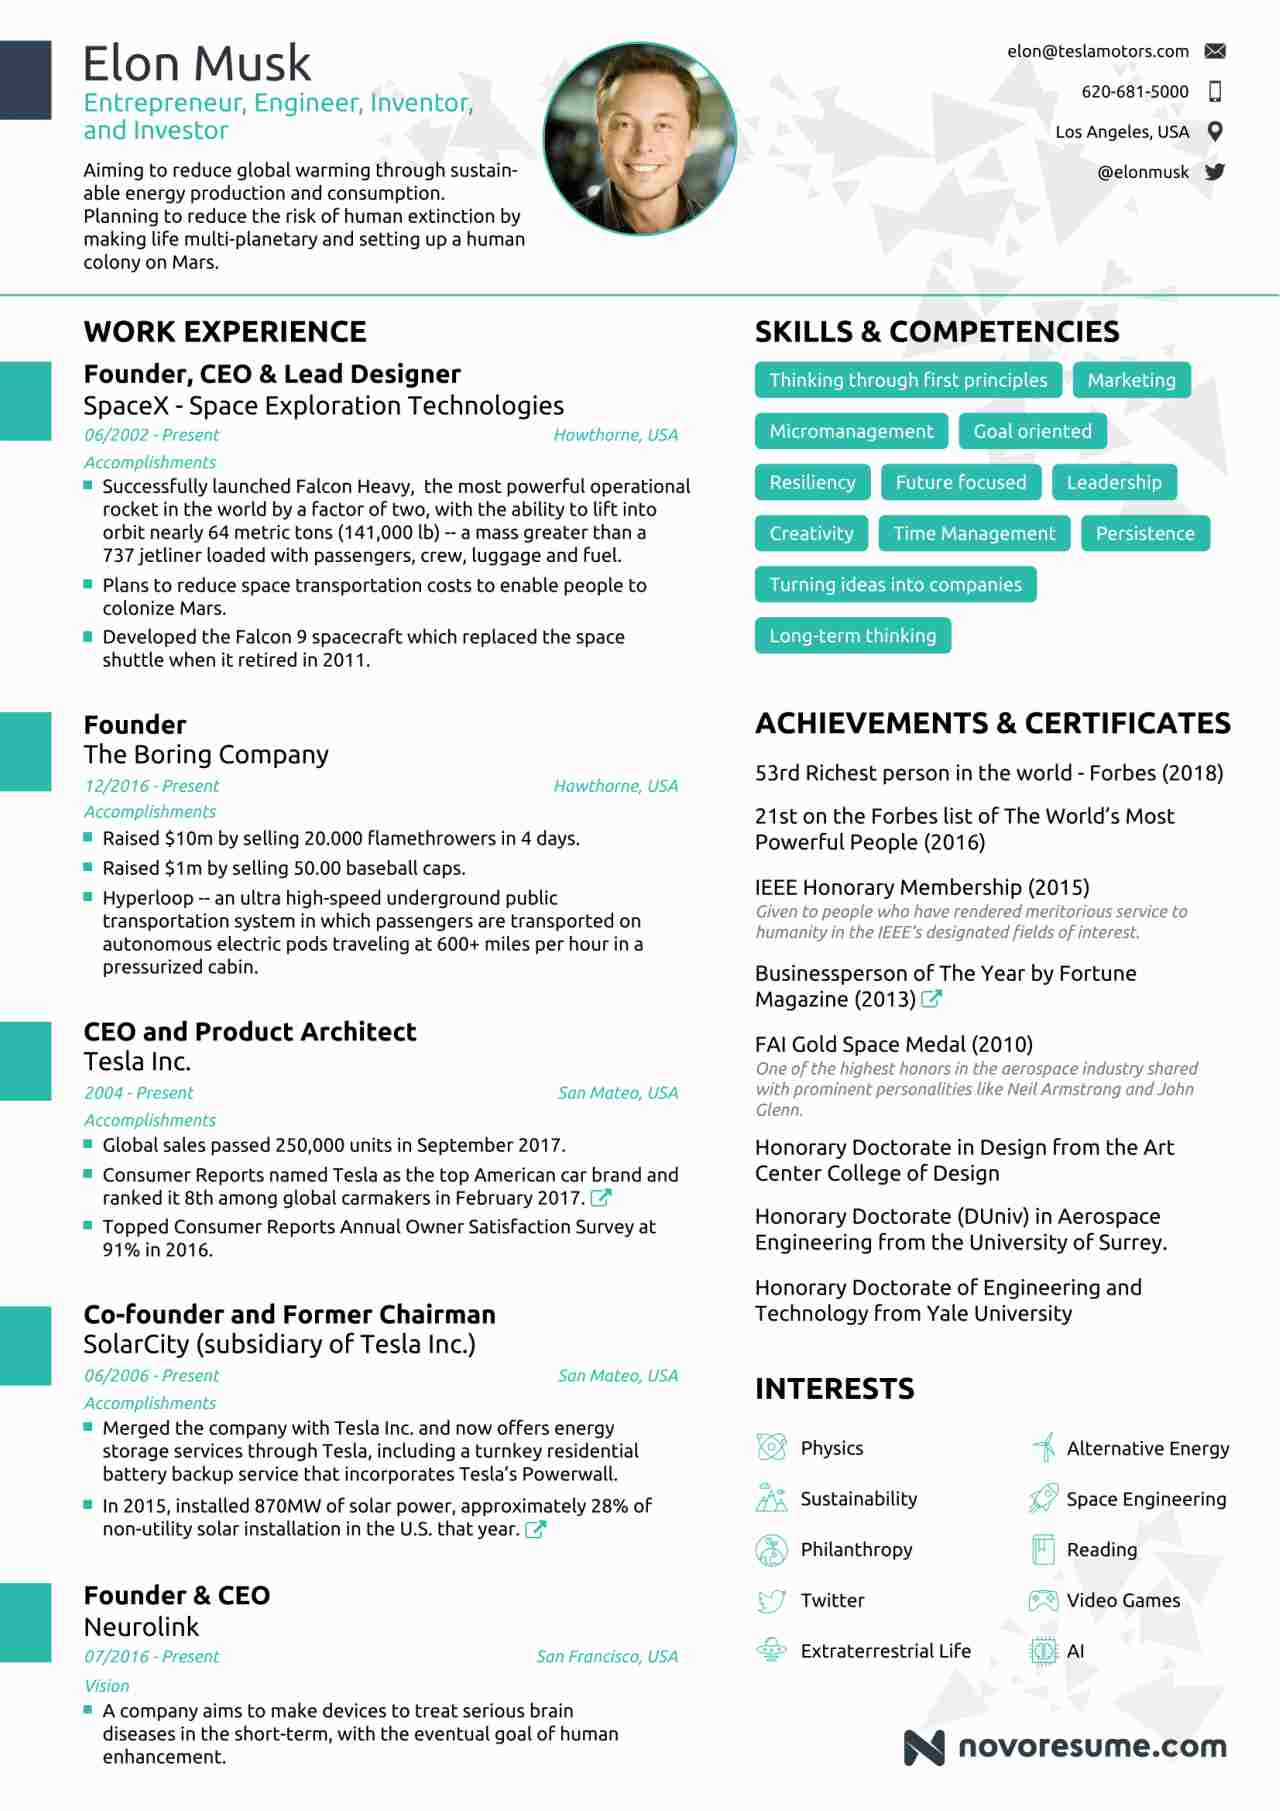 elon-musk-one-page-resume